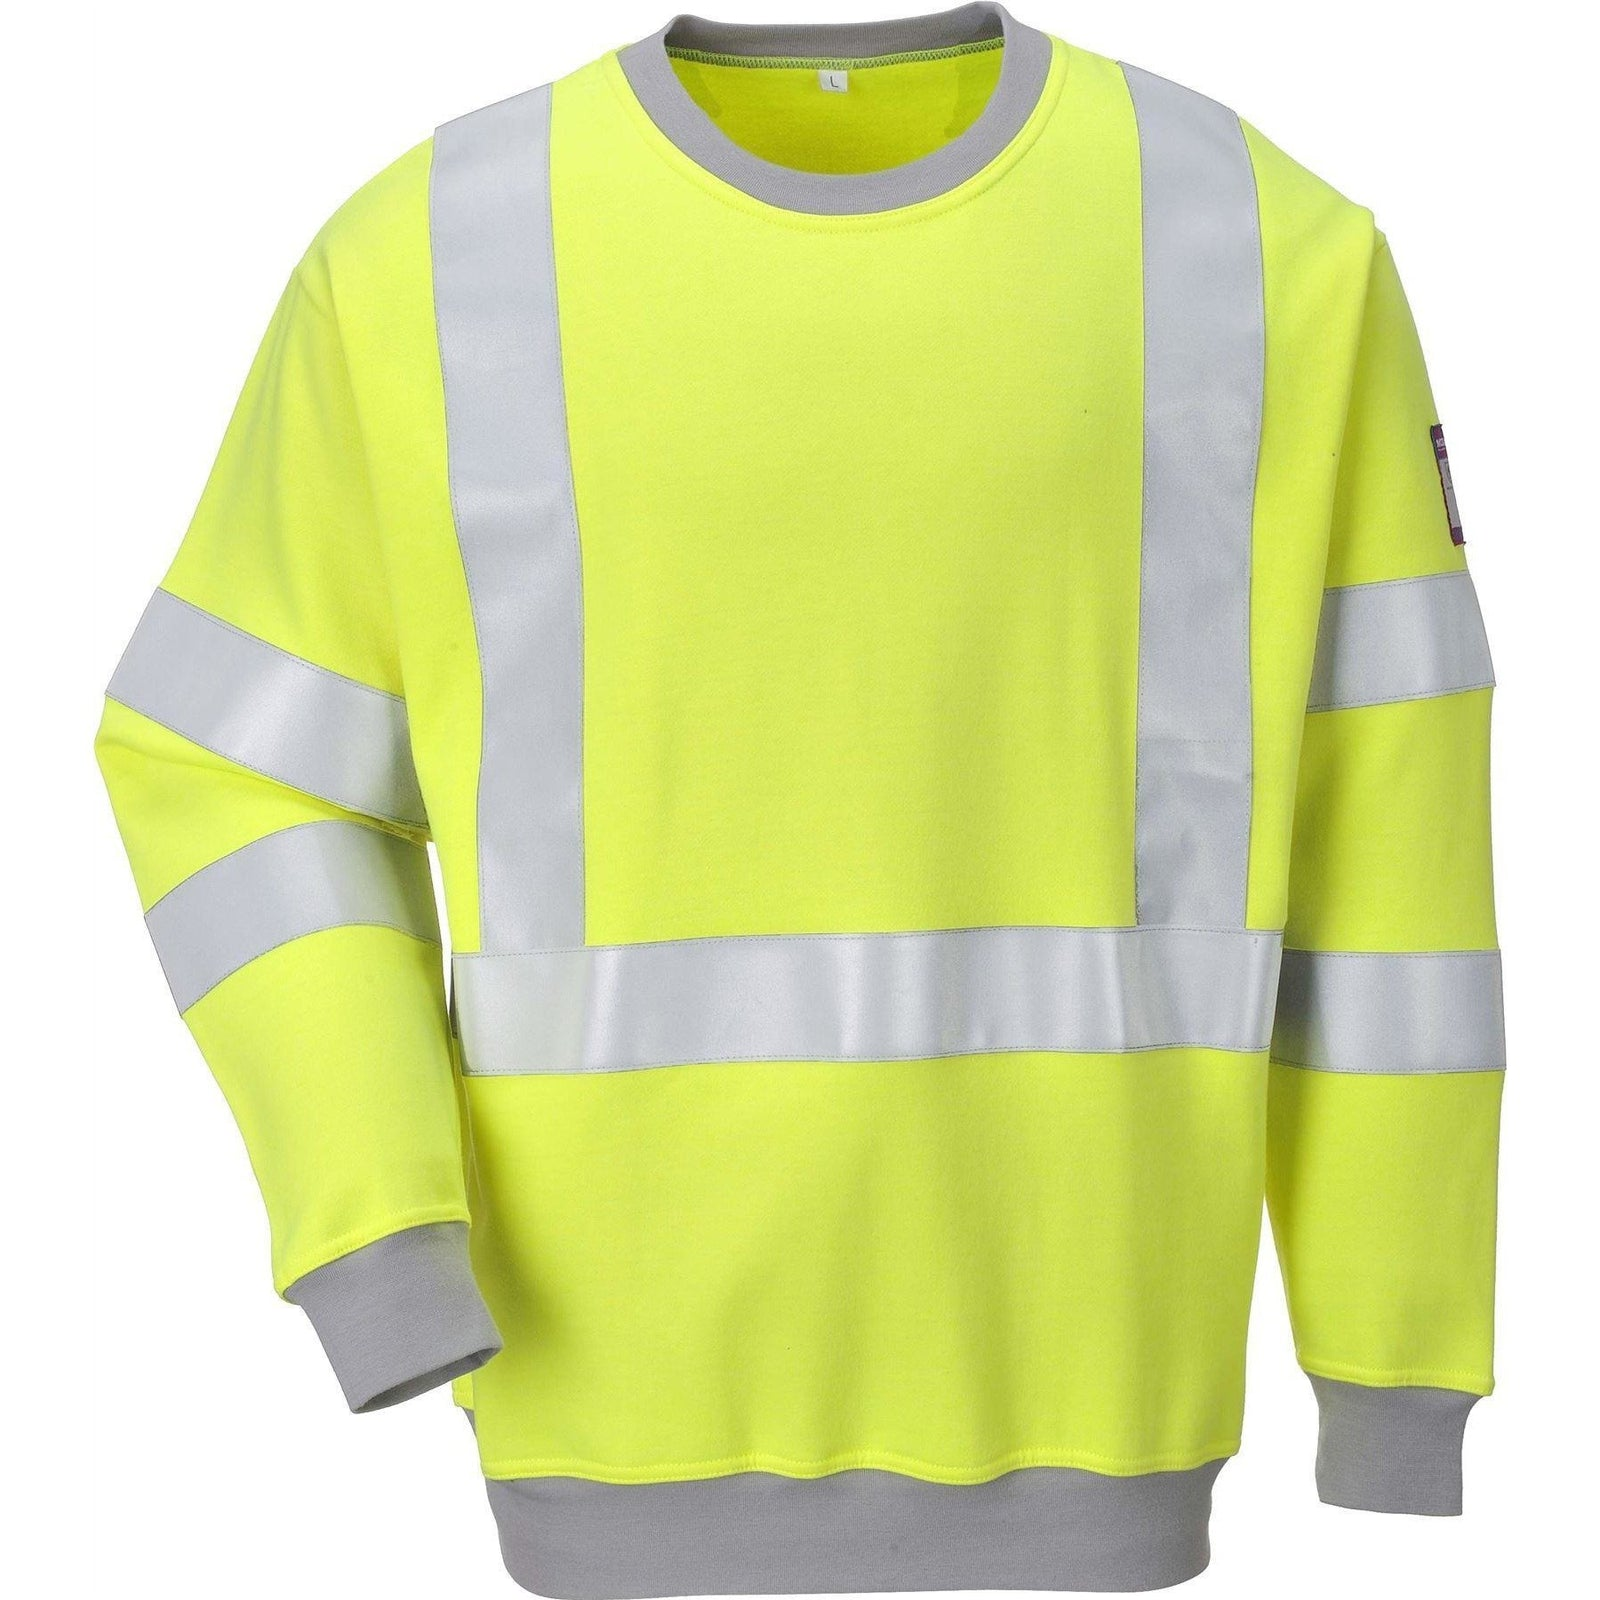 Portwest Flame Resistant Anti-Static Hi-Vis Sweatshirt FR72 - reid outdoors